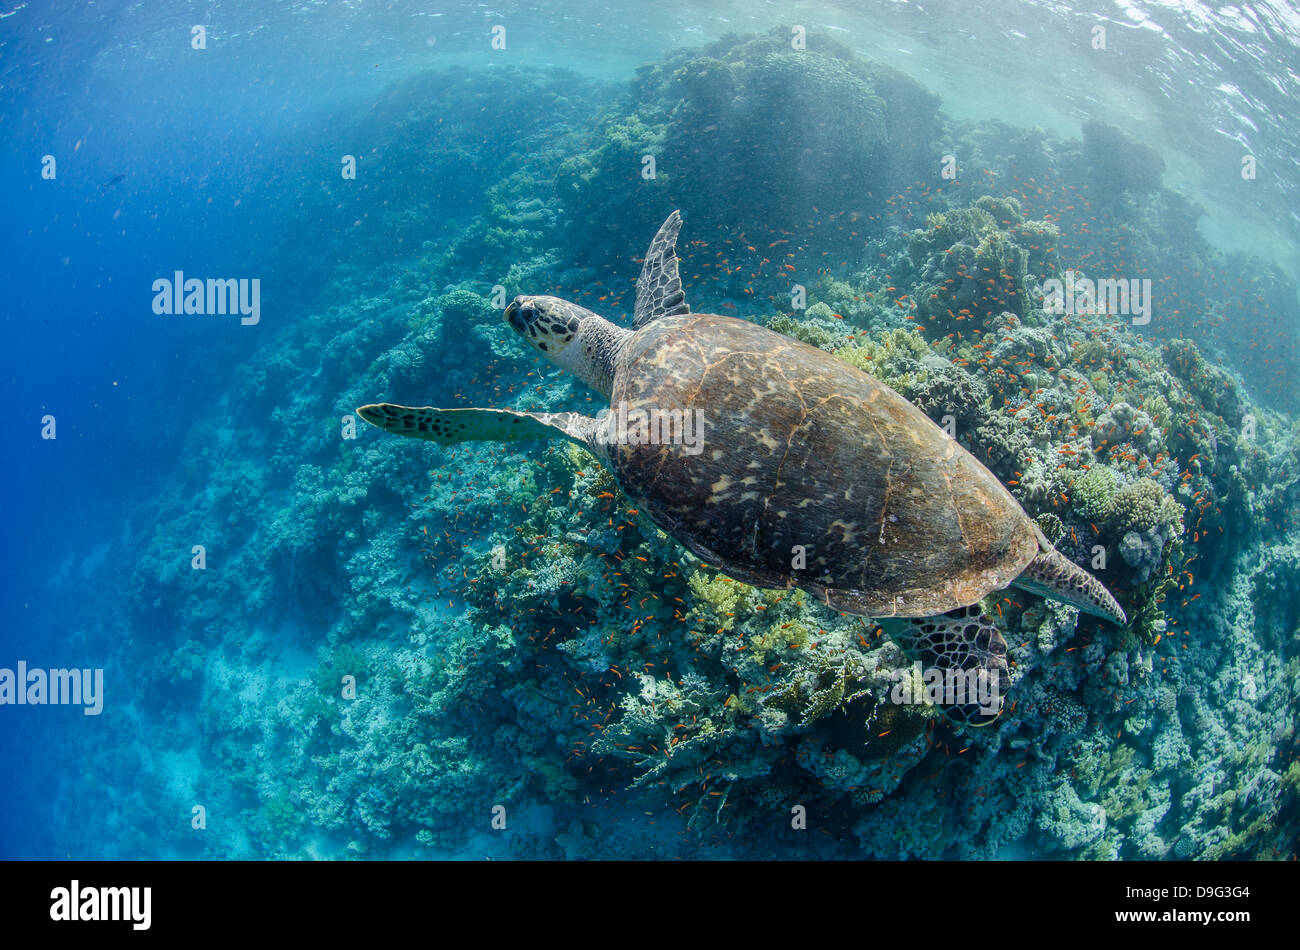 The critically endangered hawksbill turtle above coral reef, Ras Mohammed National Park, Sinai, Red Sea, Egypt, - Stock Image